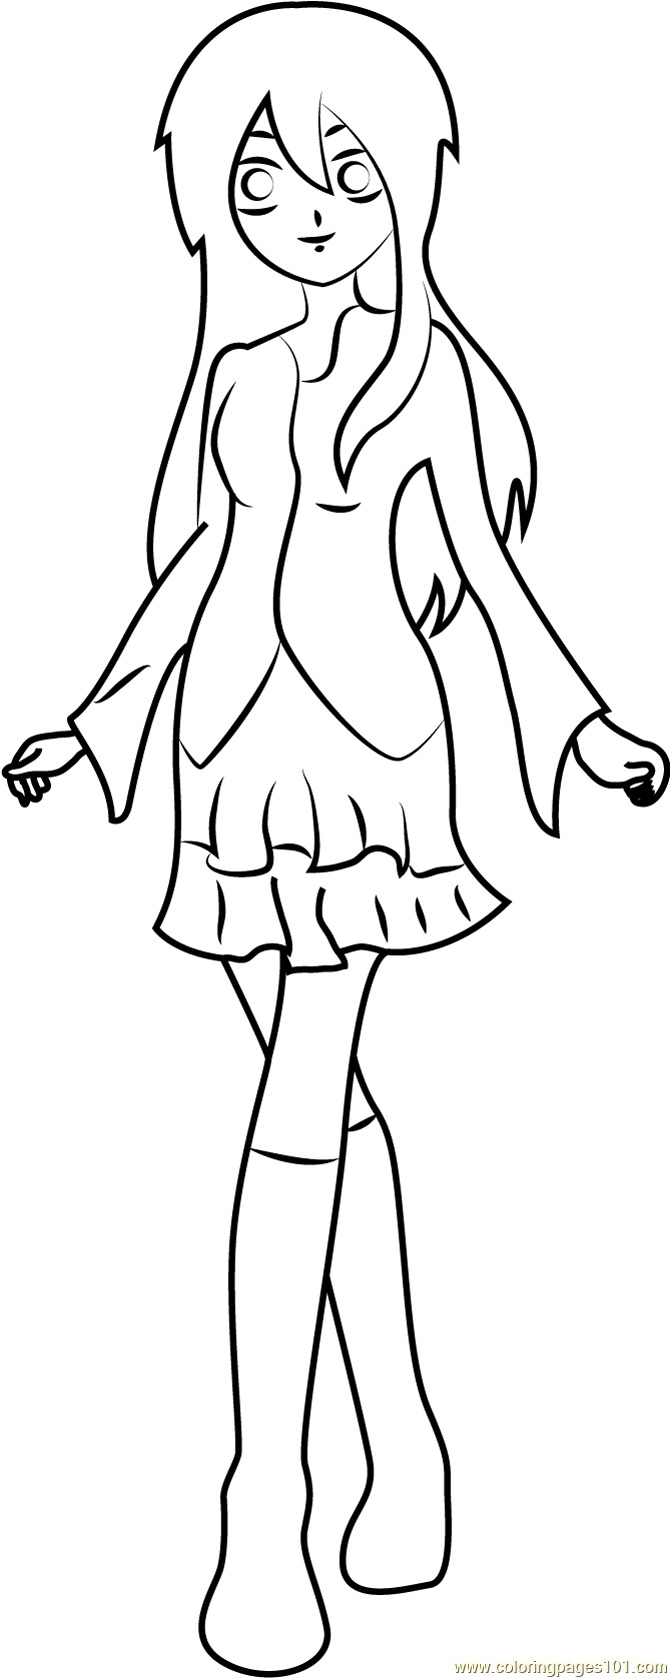 Cute Runo Coloring Page